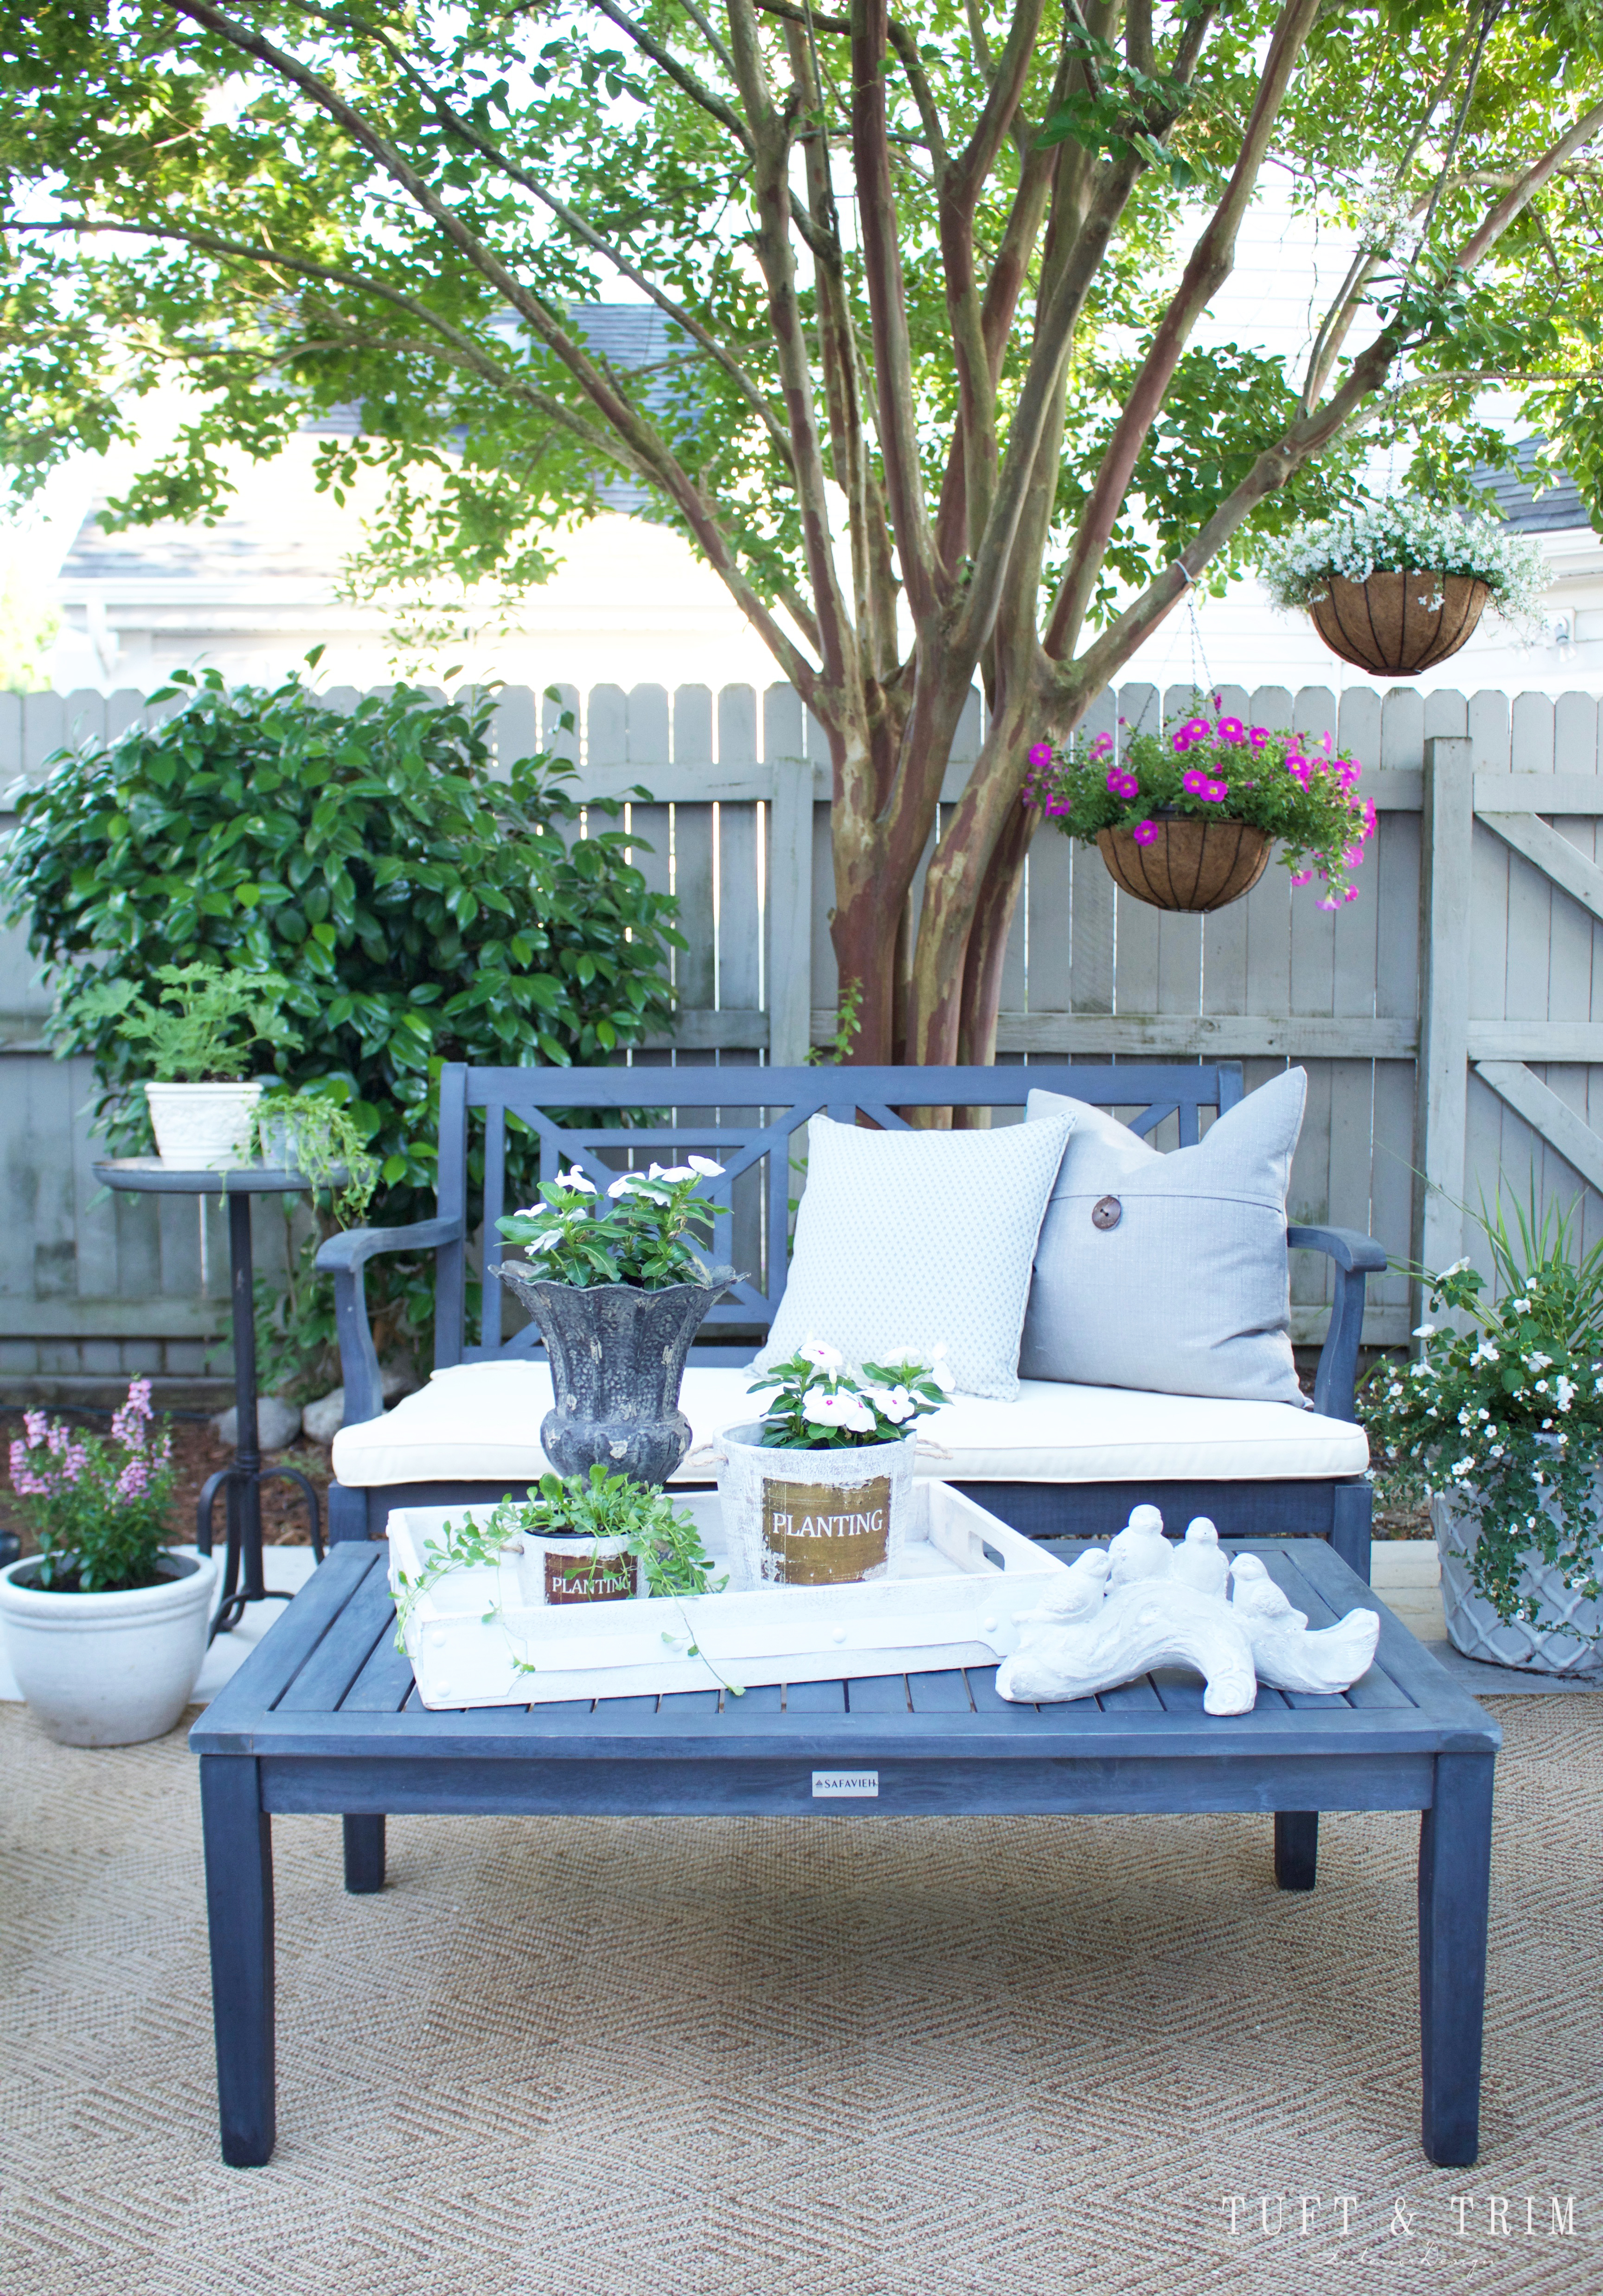 Summer Outdoor Living Tour: Before and After with Tuft & Trim